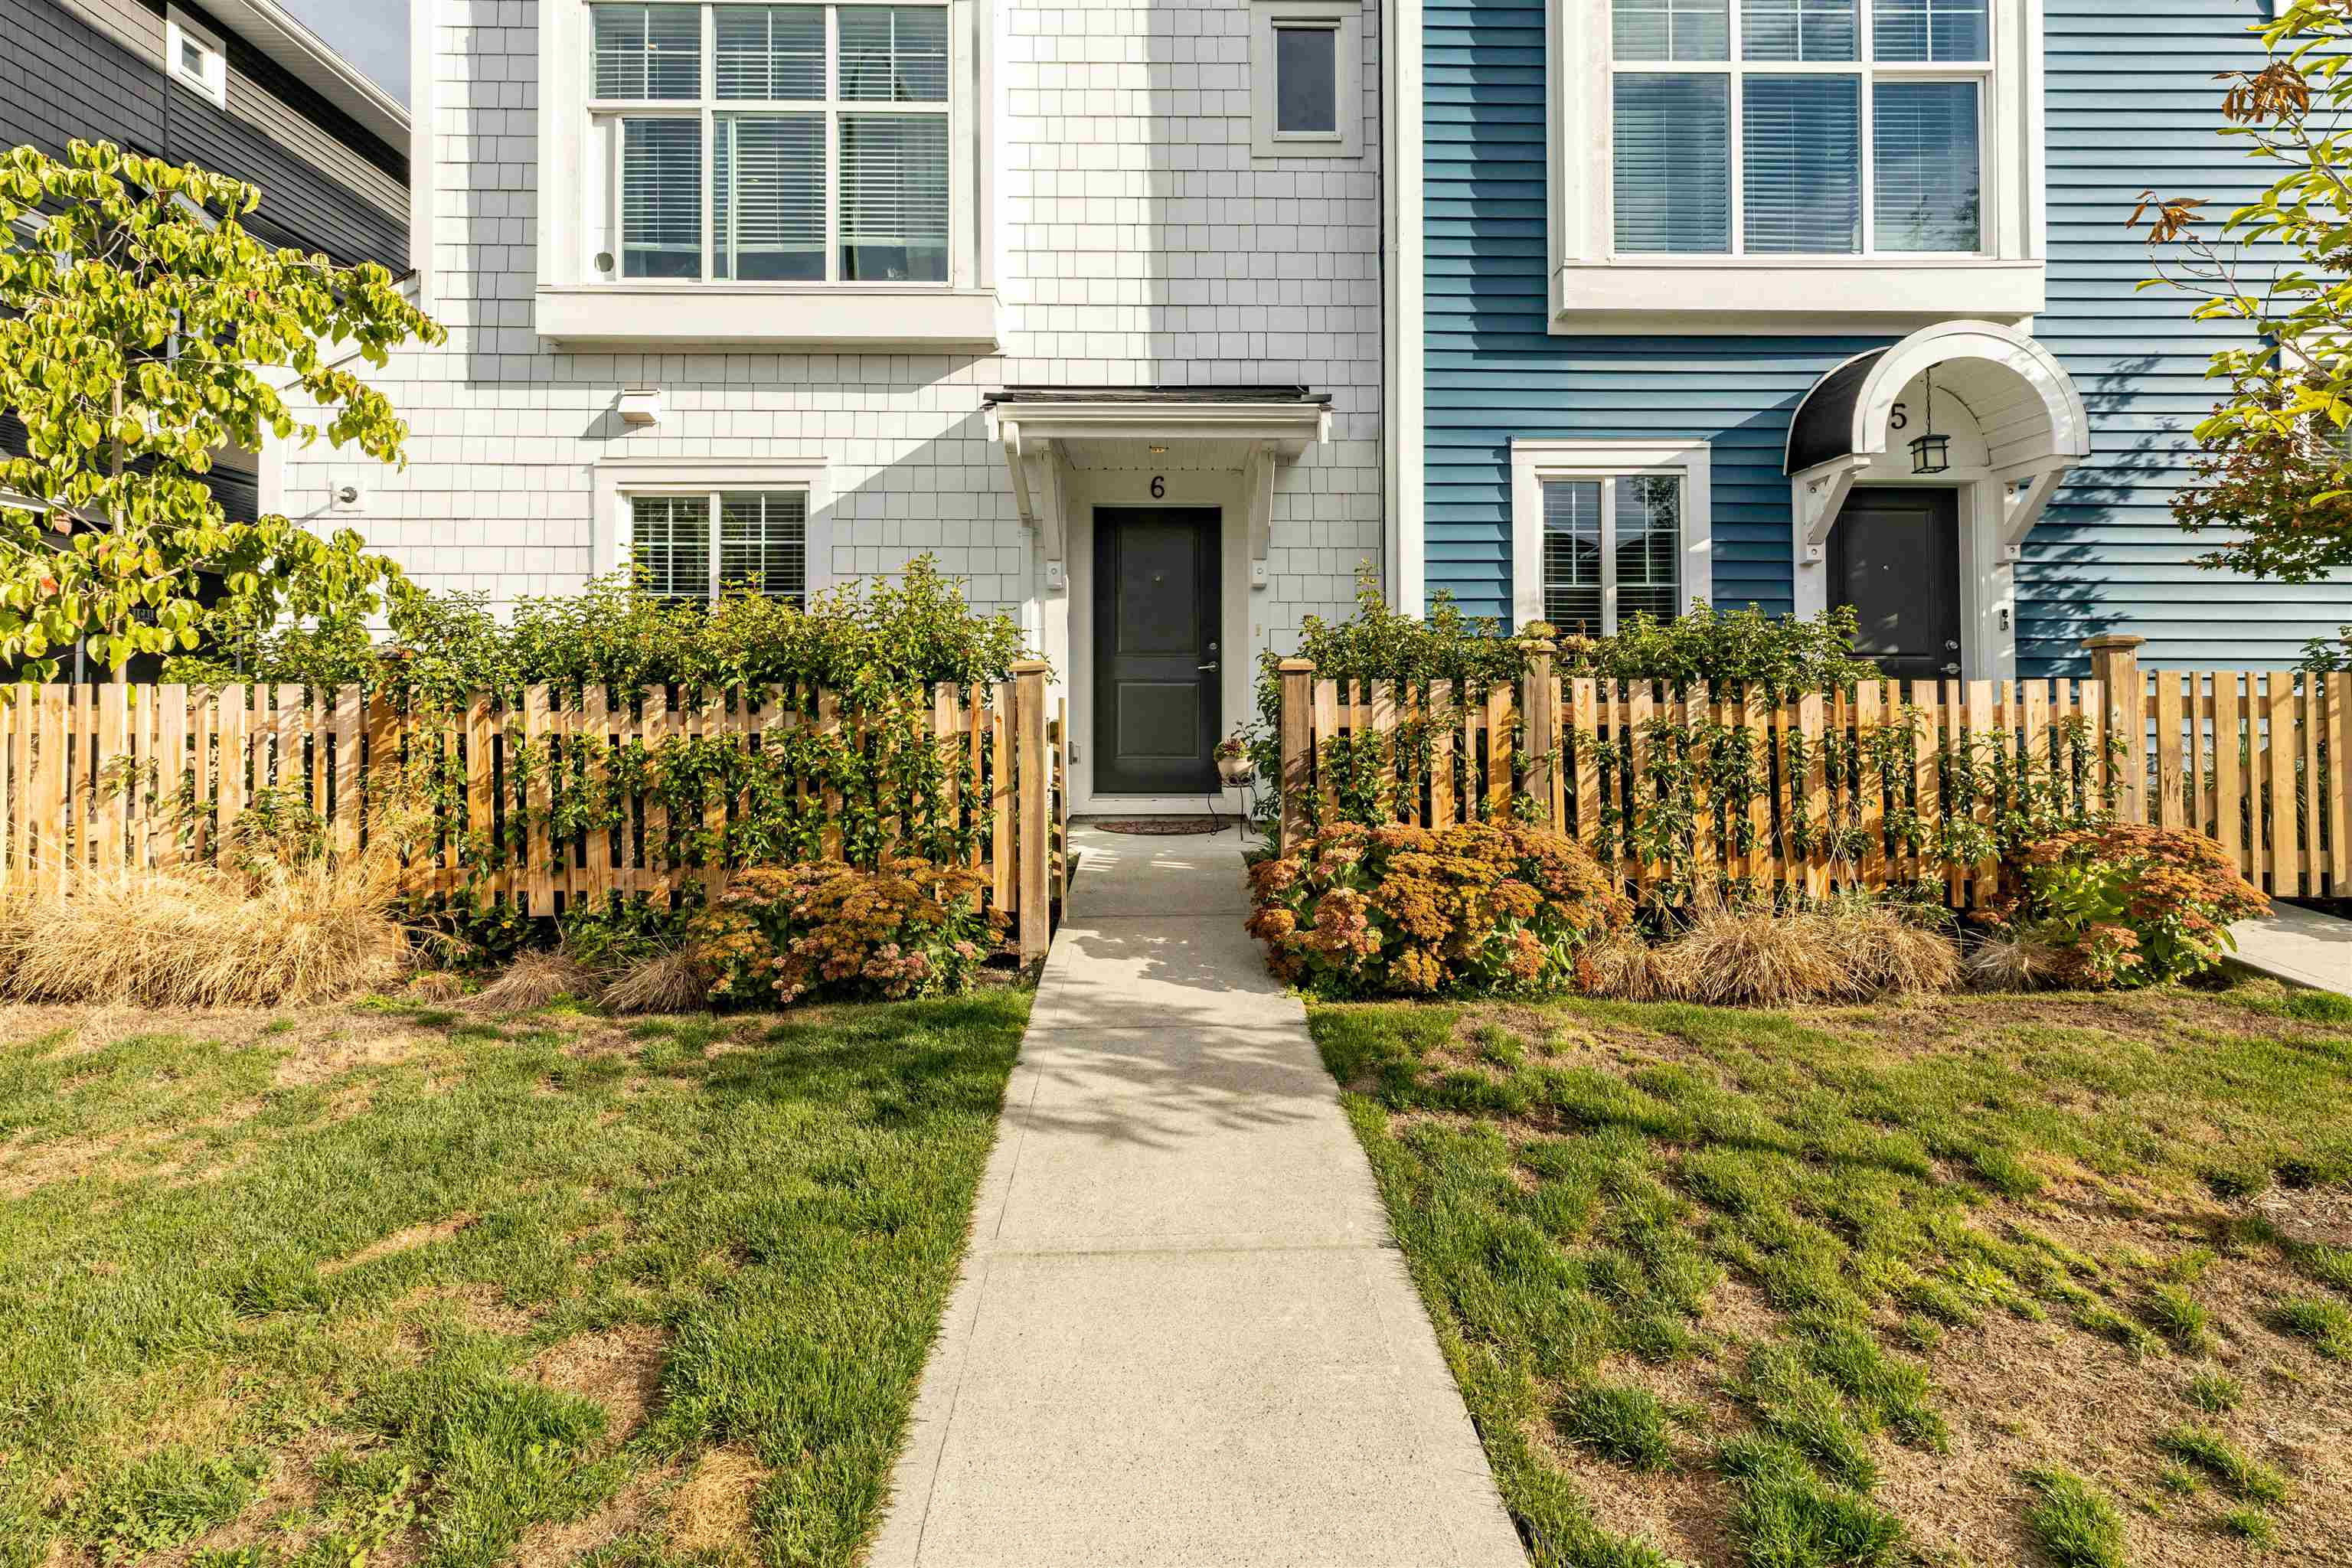 6 20451 84 AVENUE - Willoughby Heights Townhouse for sale, 4 Bedrooms (R2616635) - #3